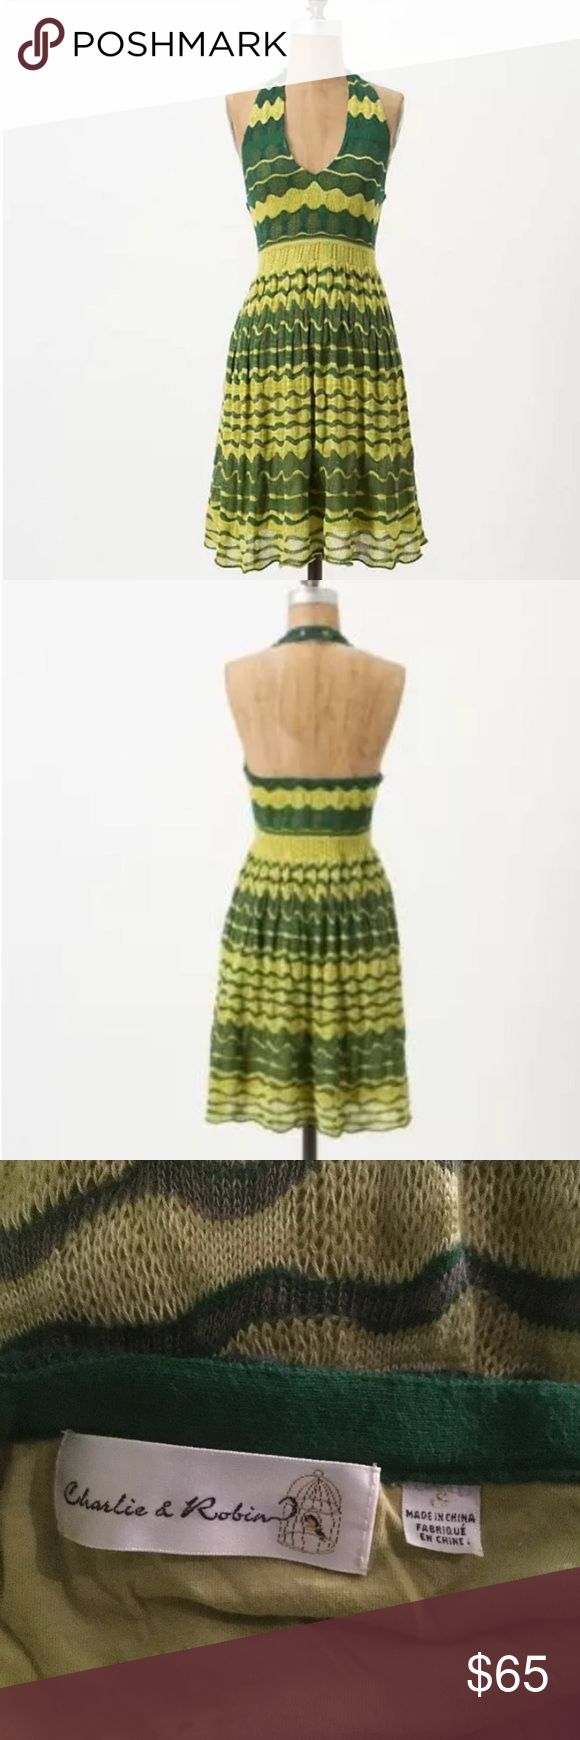 Anthropologie Lemon & Lime Dress Anthropologie by Charlie Robin, Crochet knit zig-zag stripes in bright yellow and green, halter neckline with jeweled buttons at clasp. Super soft crocheted linen fully lined in a very soft lime green knot. This dress reminds me of vintage Missoni! EUC. Anthropologie Dresses